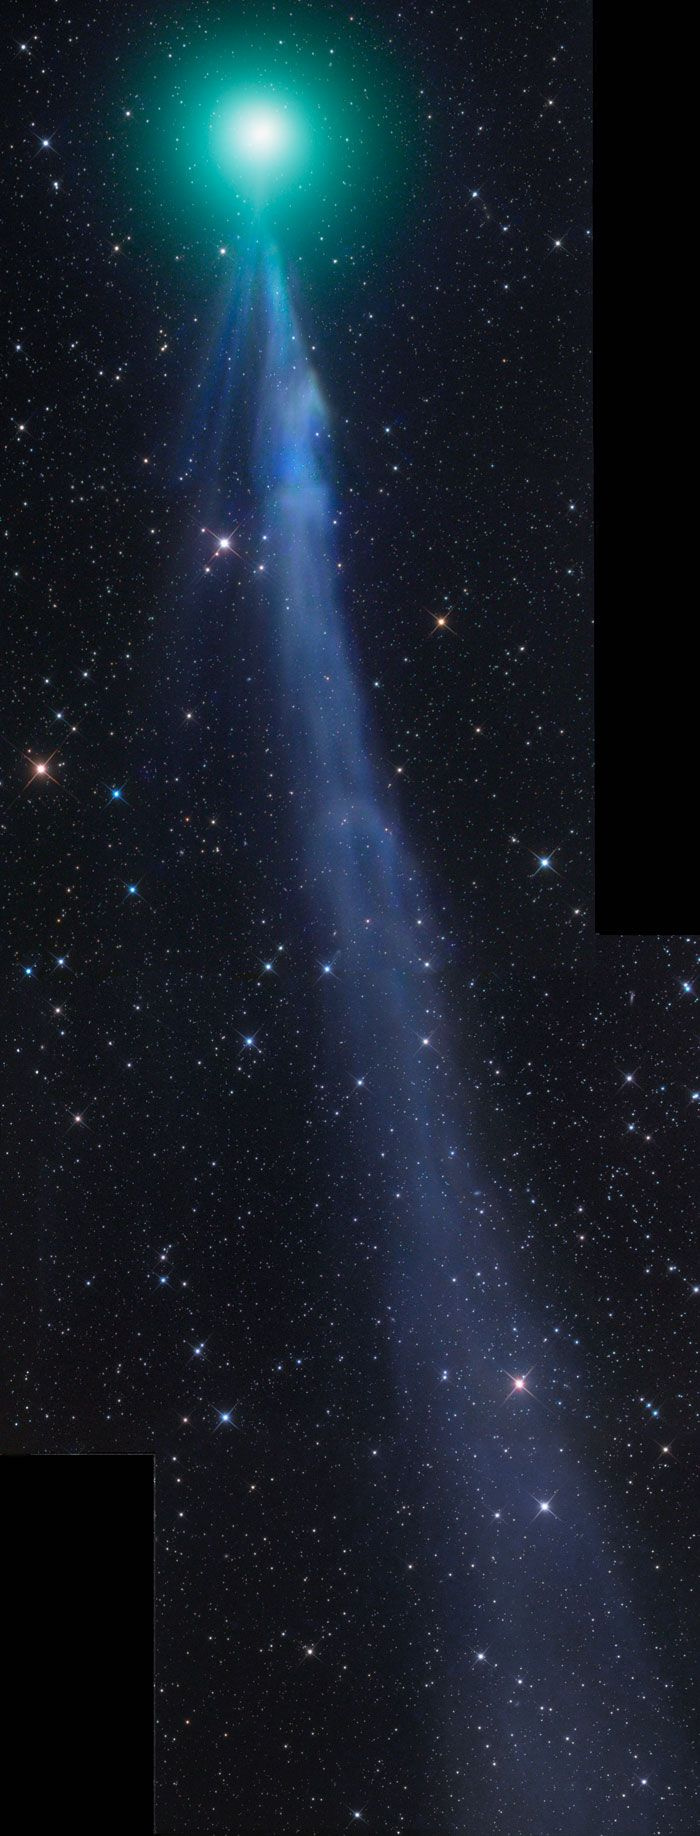 Comet Lovejoy by Gerald Rhemann. js - Just Space